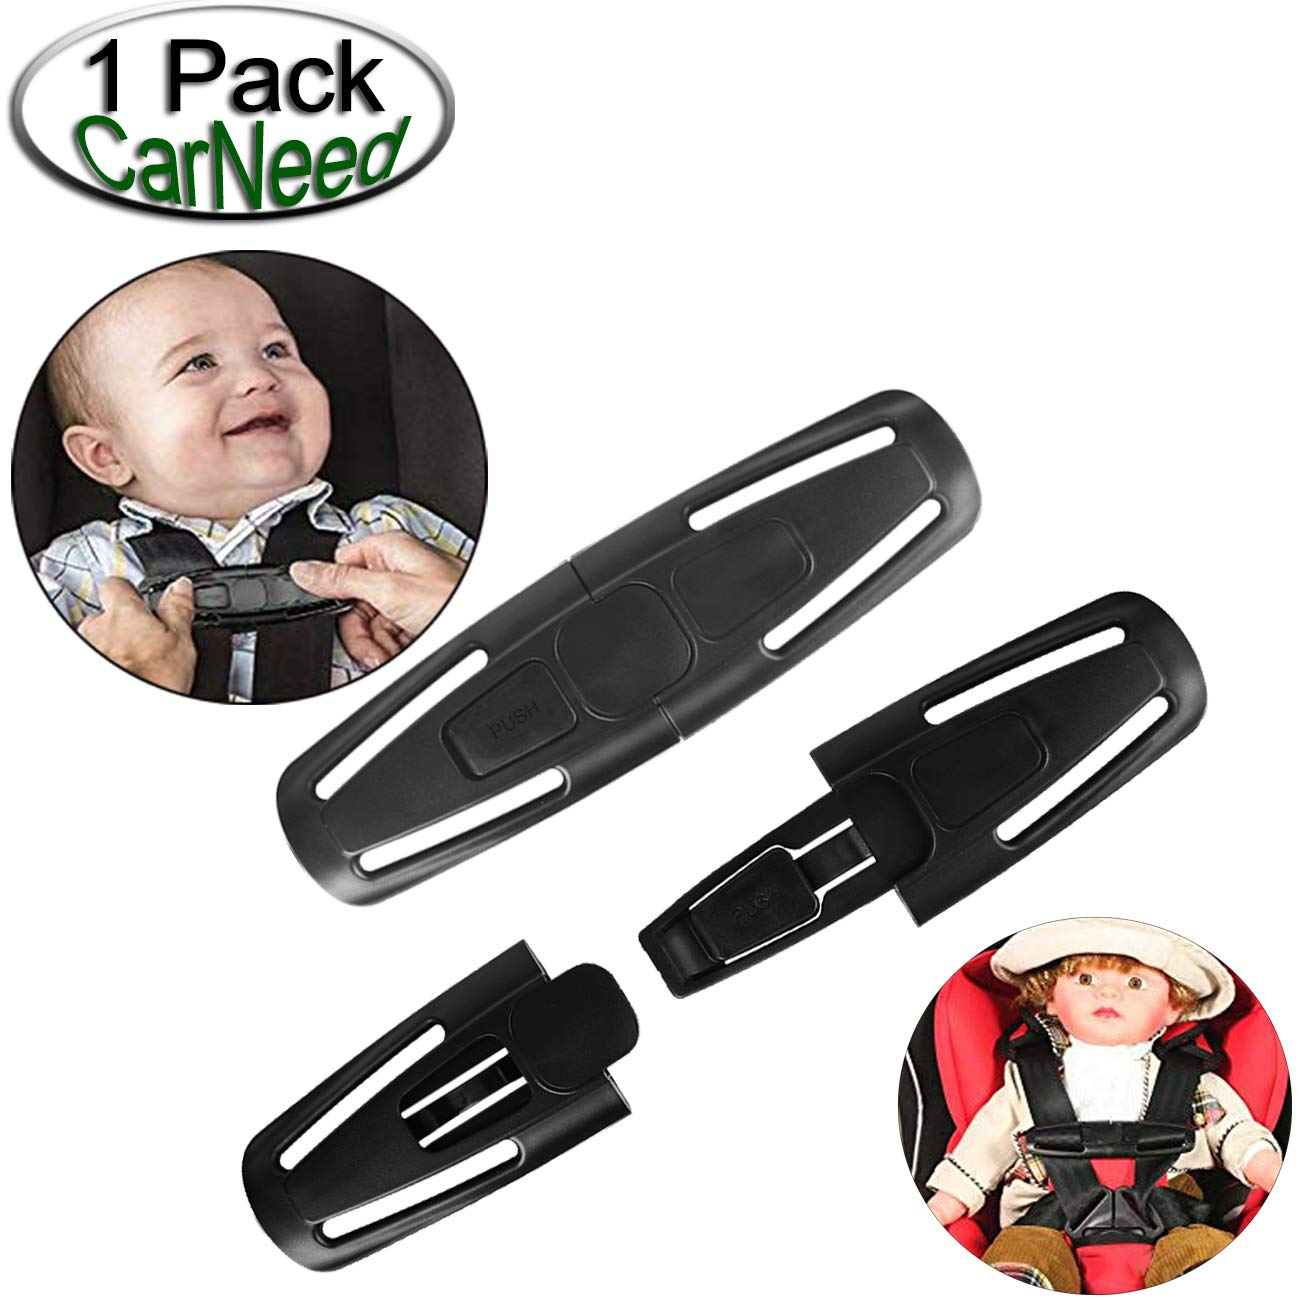 CarNeed 2 Pack Baby Chest Harness Clip, Universal Seat Chest Clip Guard, Black Lock Tite Stroller Chest Clip with 2 Pack Red Car Seat Belt Clip Buckle for Baby HeDou